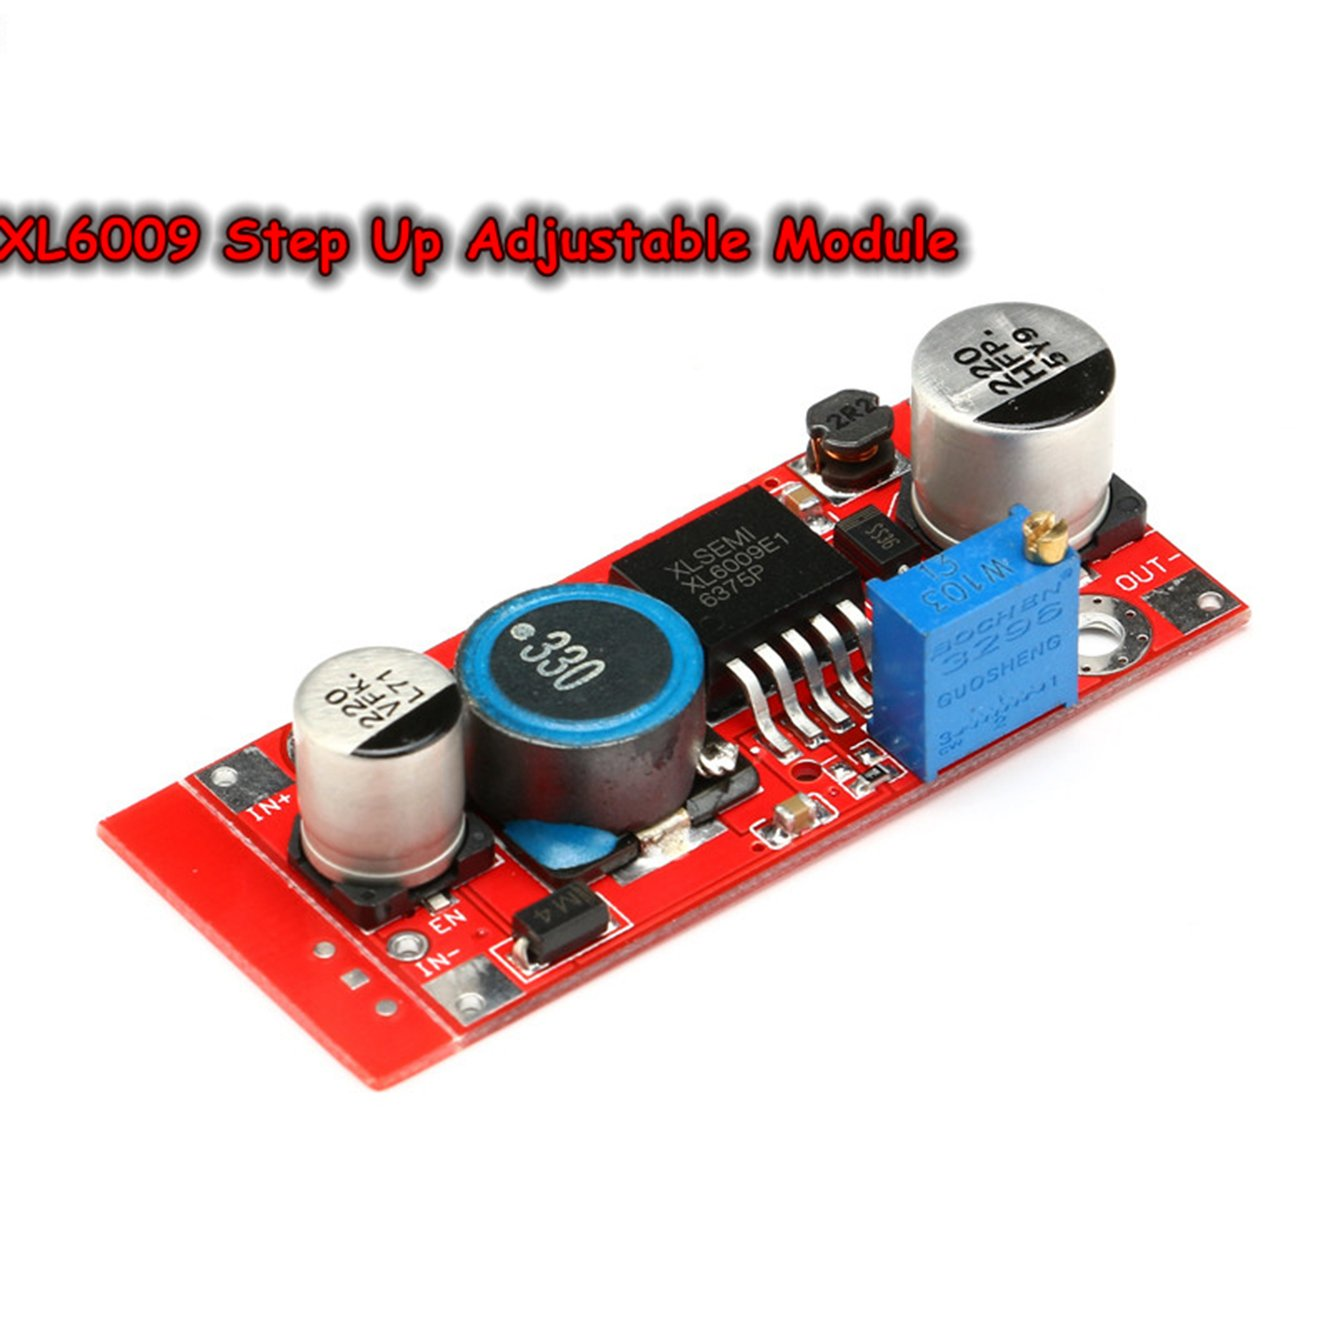 Xl6009 Boost Converter Step Up Adjustable 15w 5 32v To 50v Dc 4a Power Supply Module High Performance Low Ripple Electronics